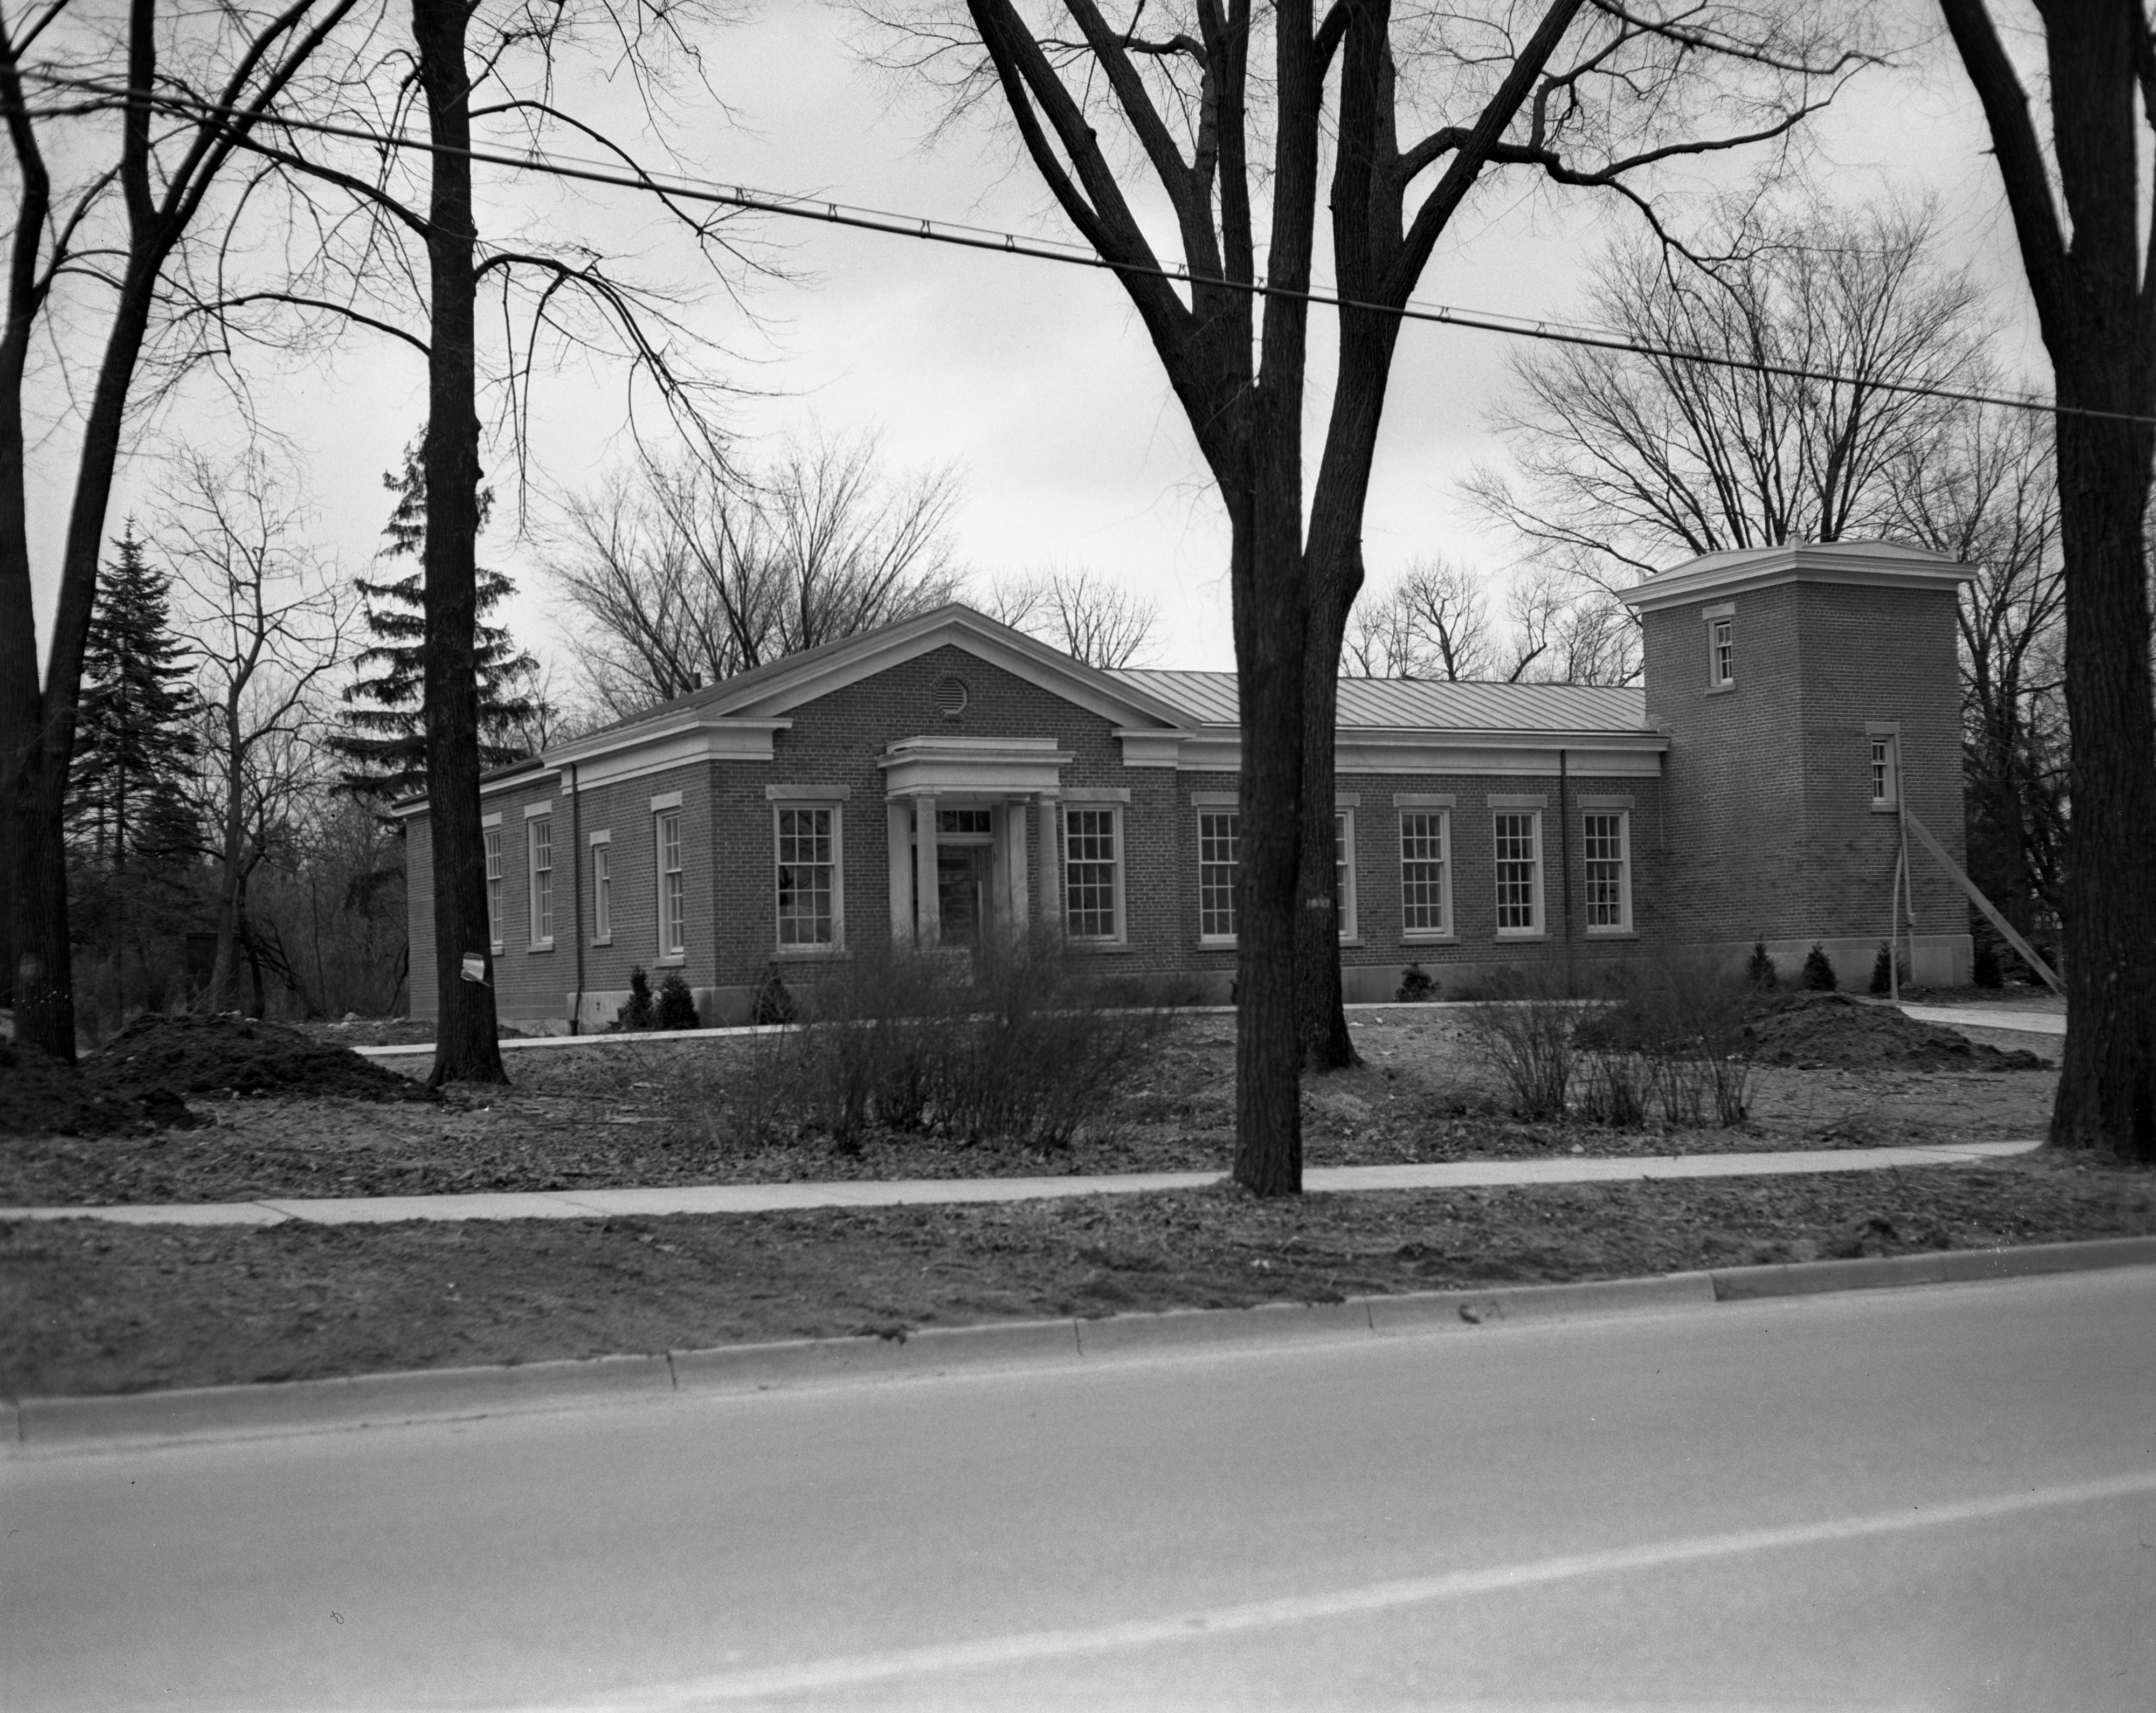 Exterior of Christian Science Church on Washtenaw, January 1950 image